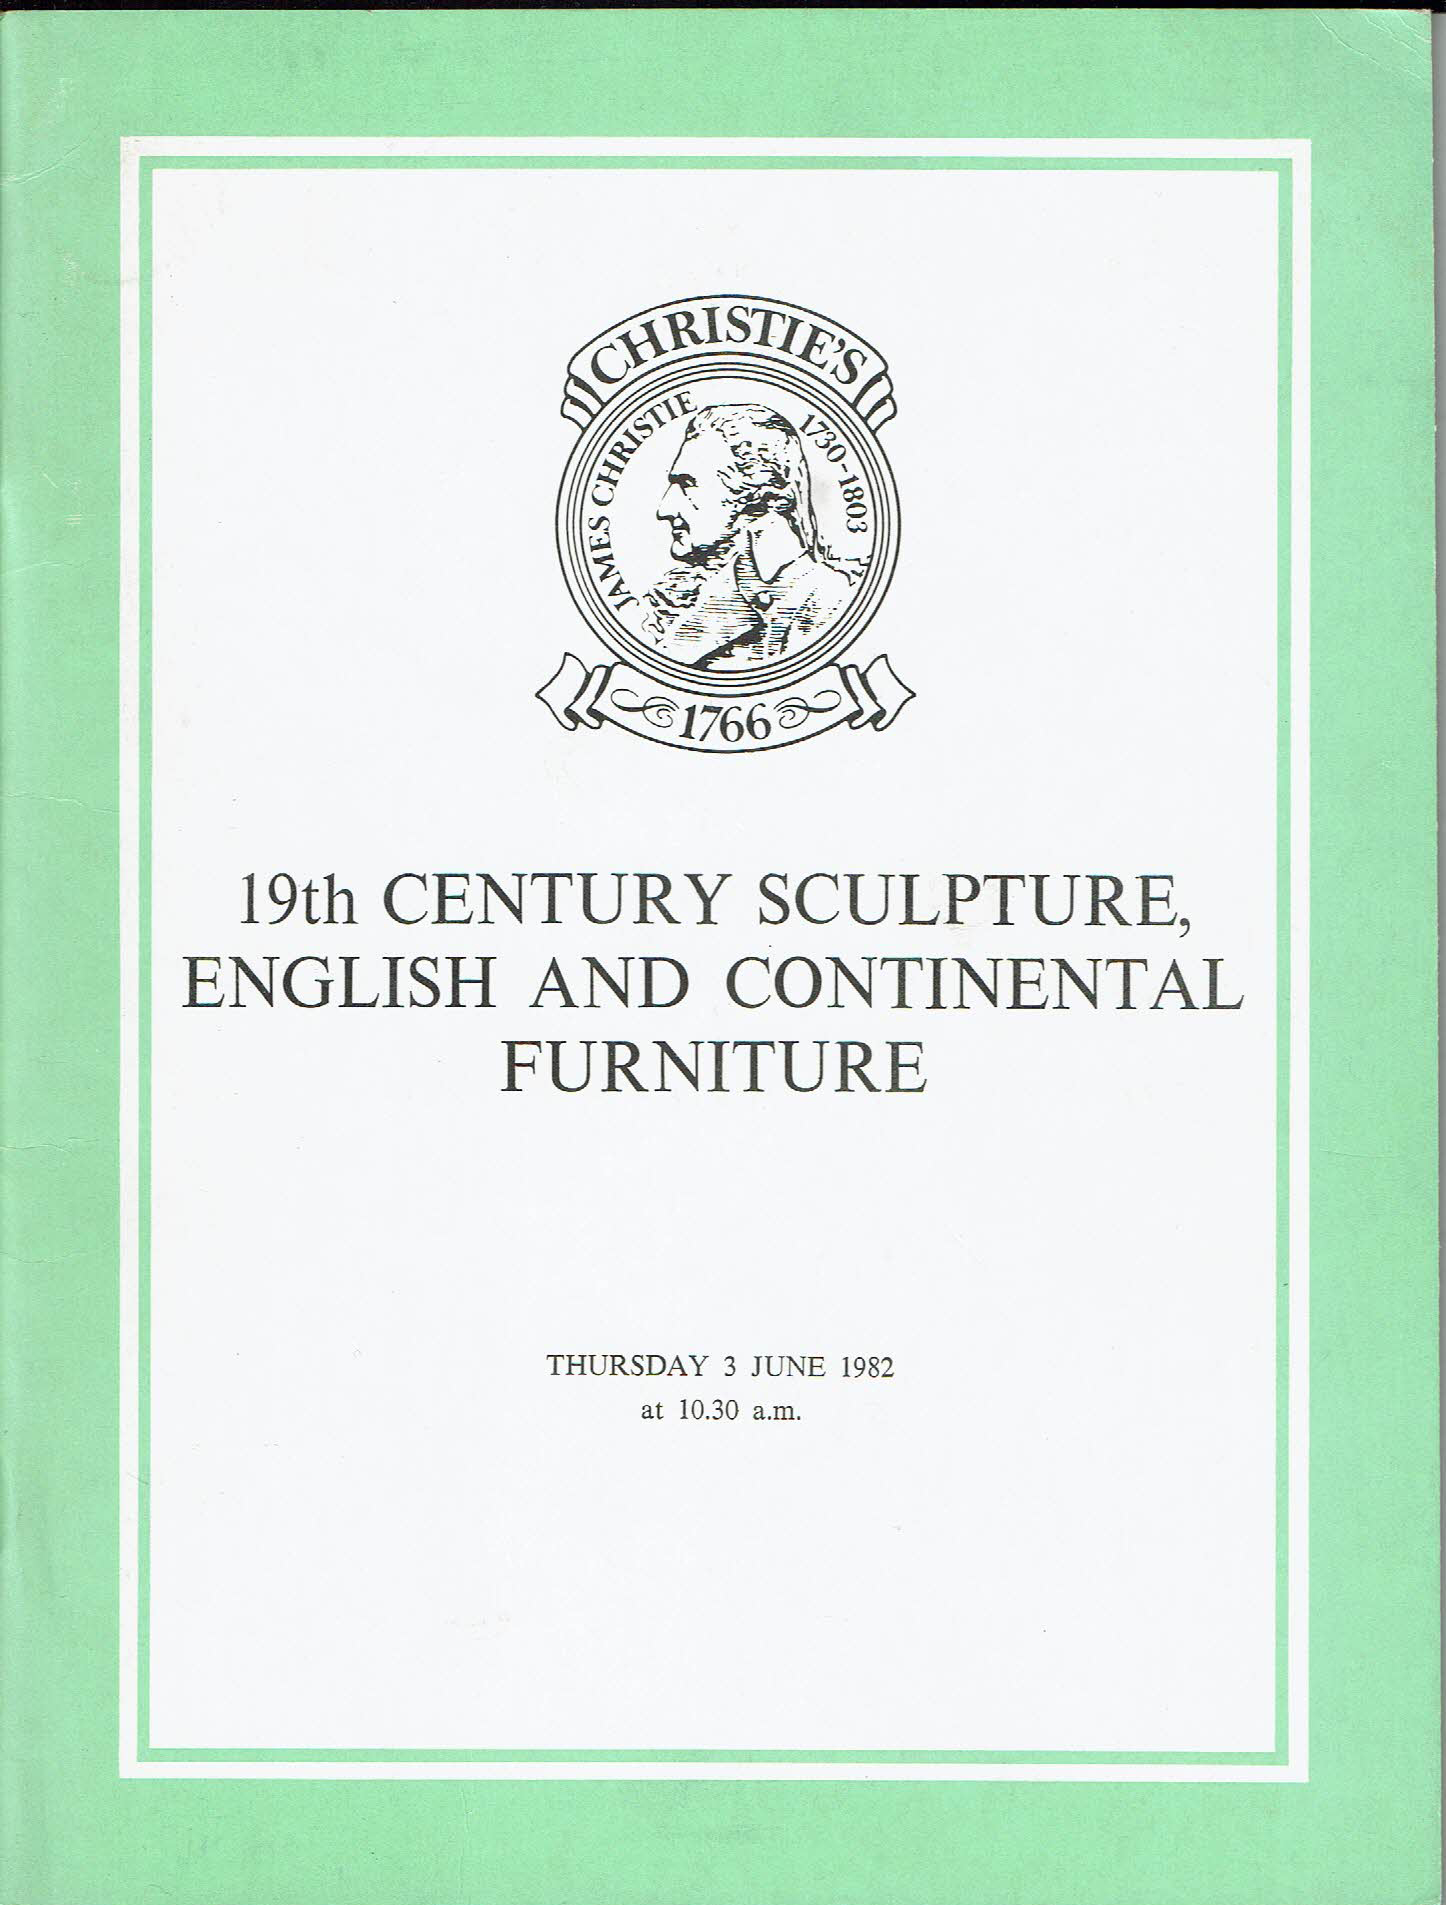 Christies 19the Century sculpture, English and Continental furniture